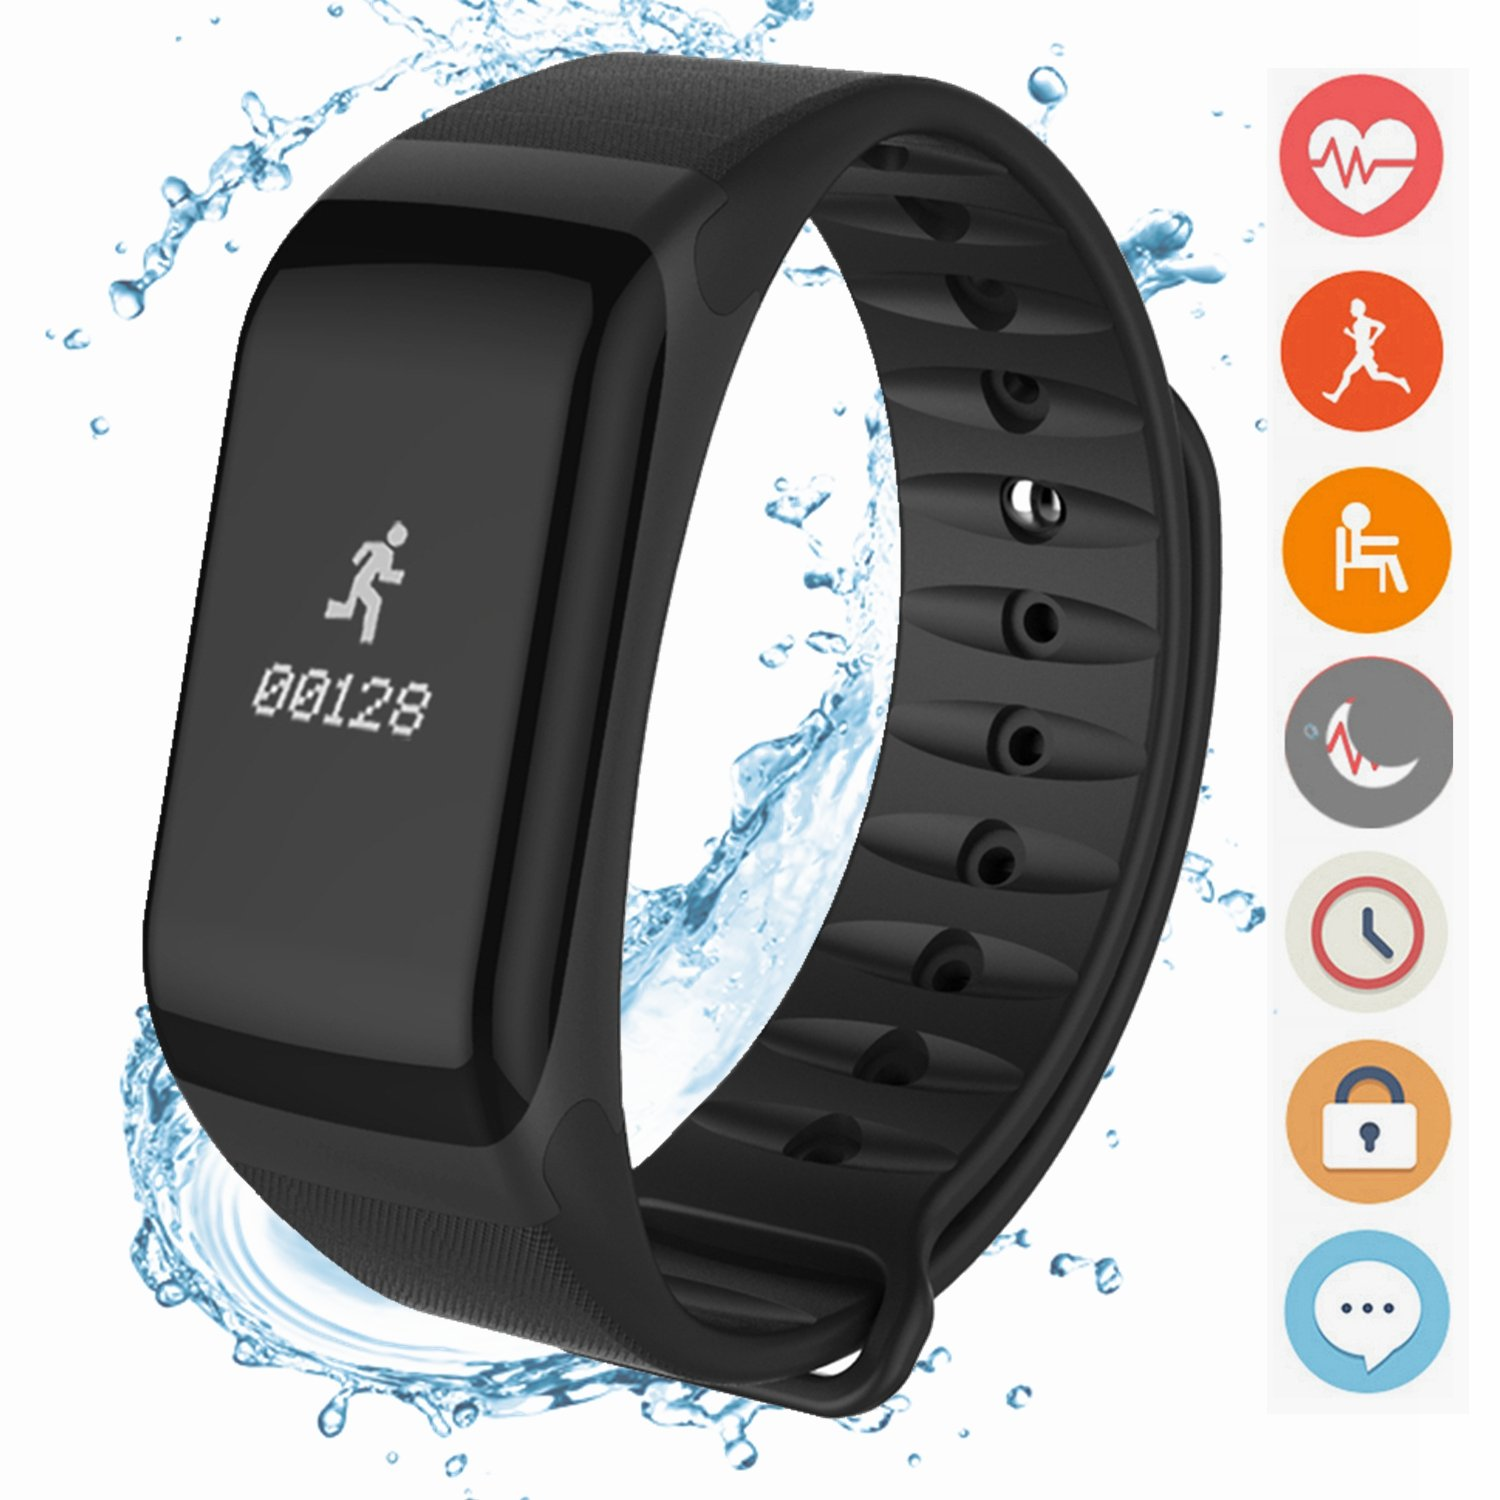 CanMixs Fitness Tracker Wristband, CM02 Smart Bracelet measuring heart rate, blood pressure, oxygen and sleep monitor step waterproof exercise health watch Android iPhone (Black)